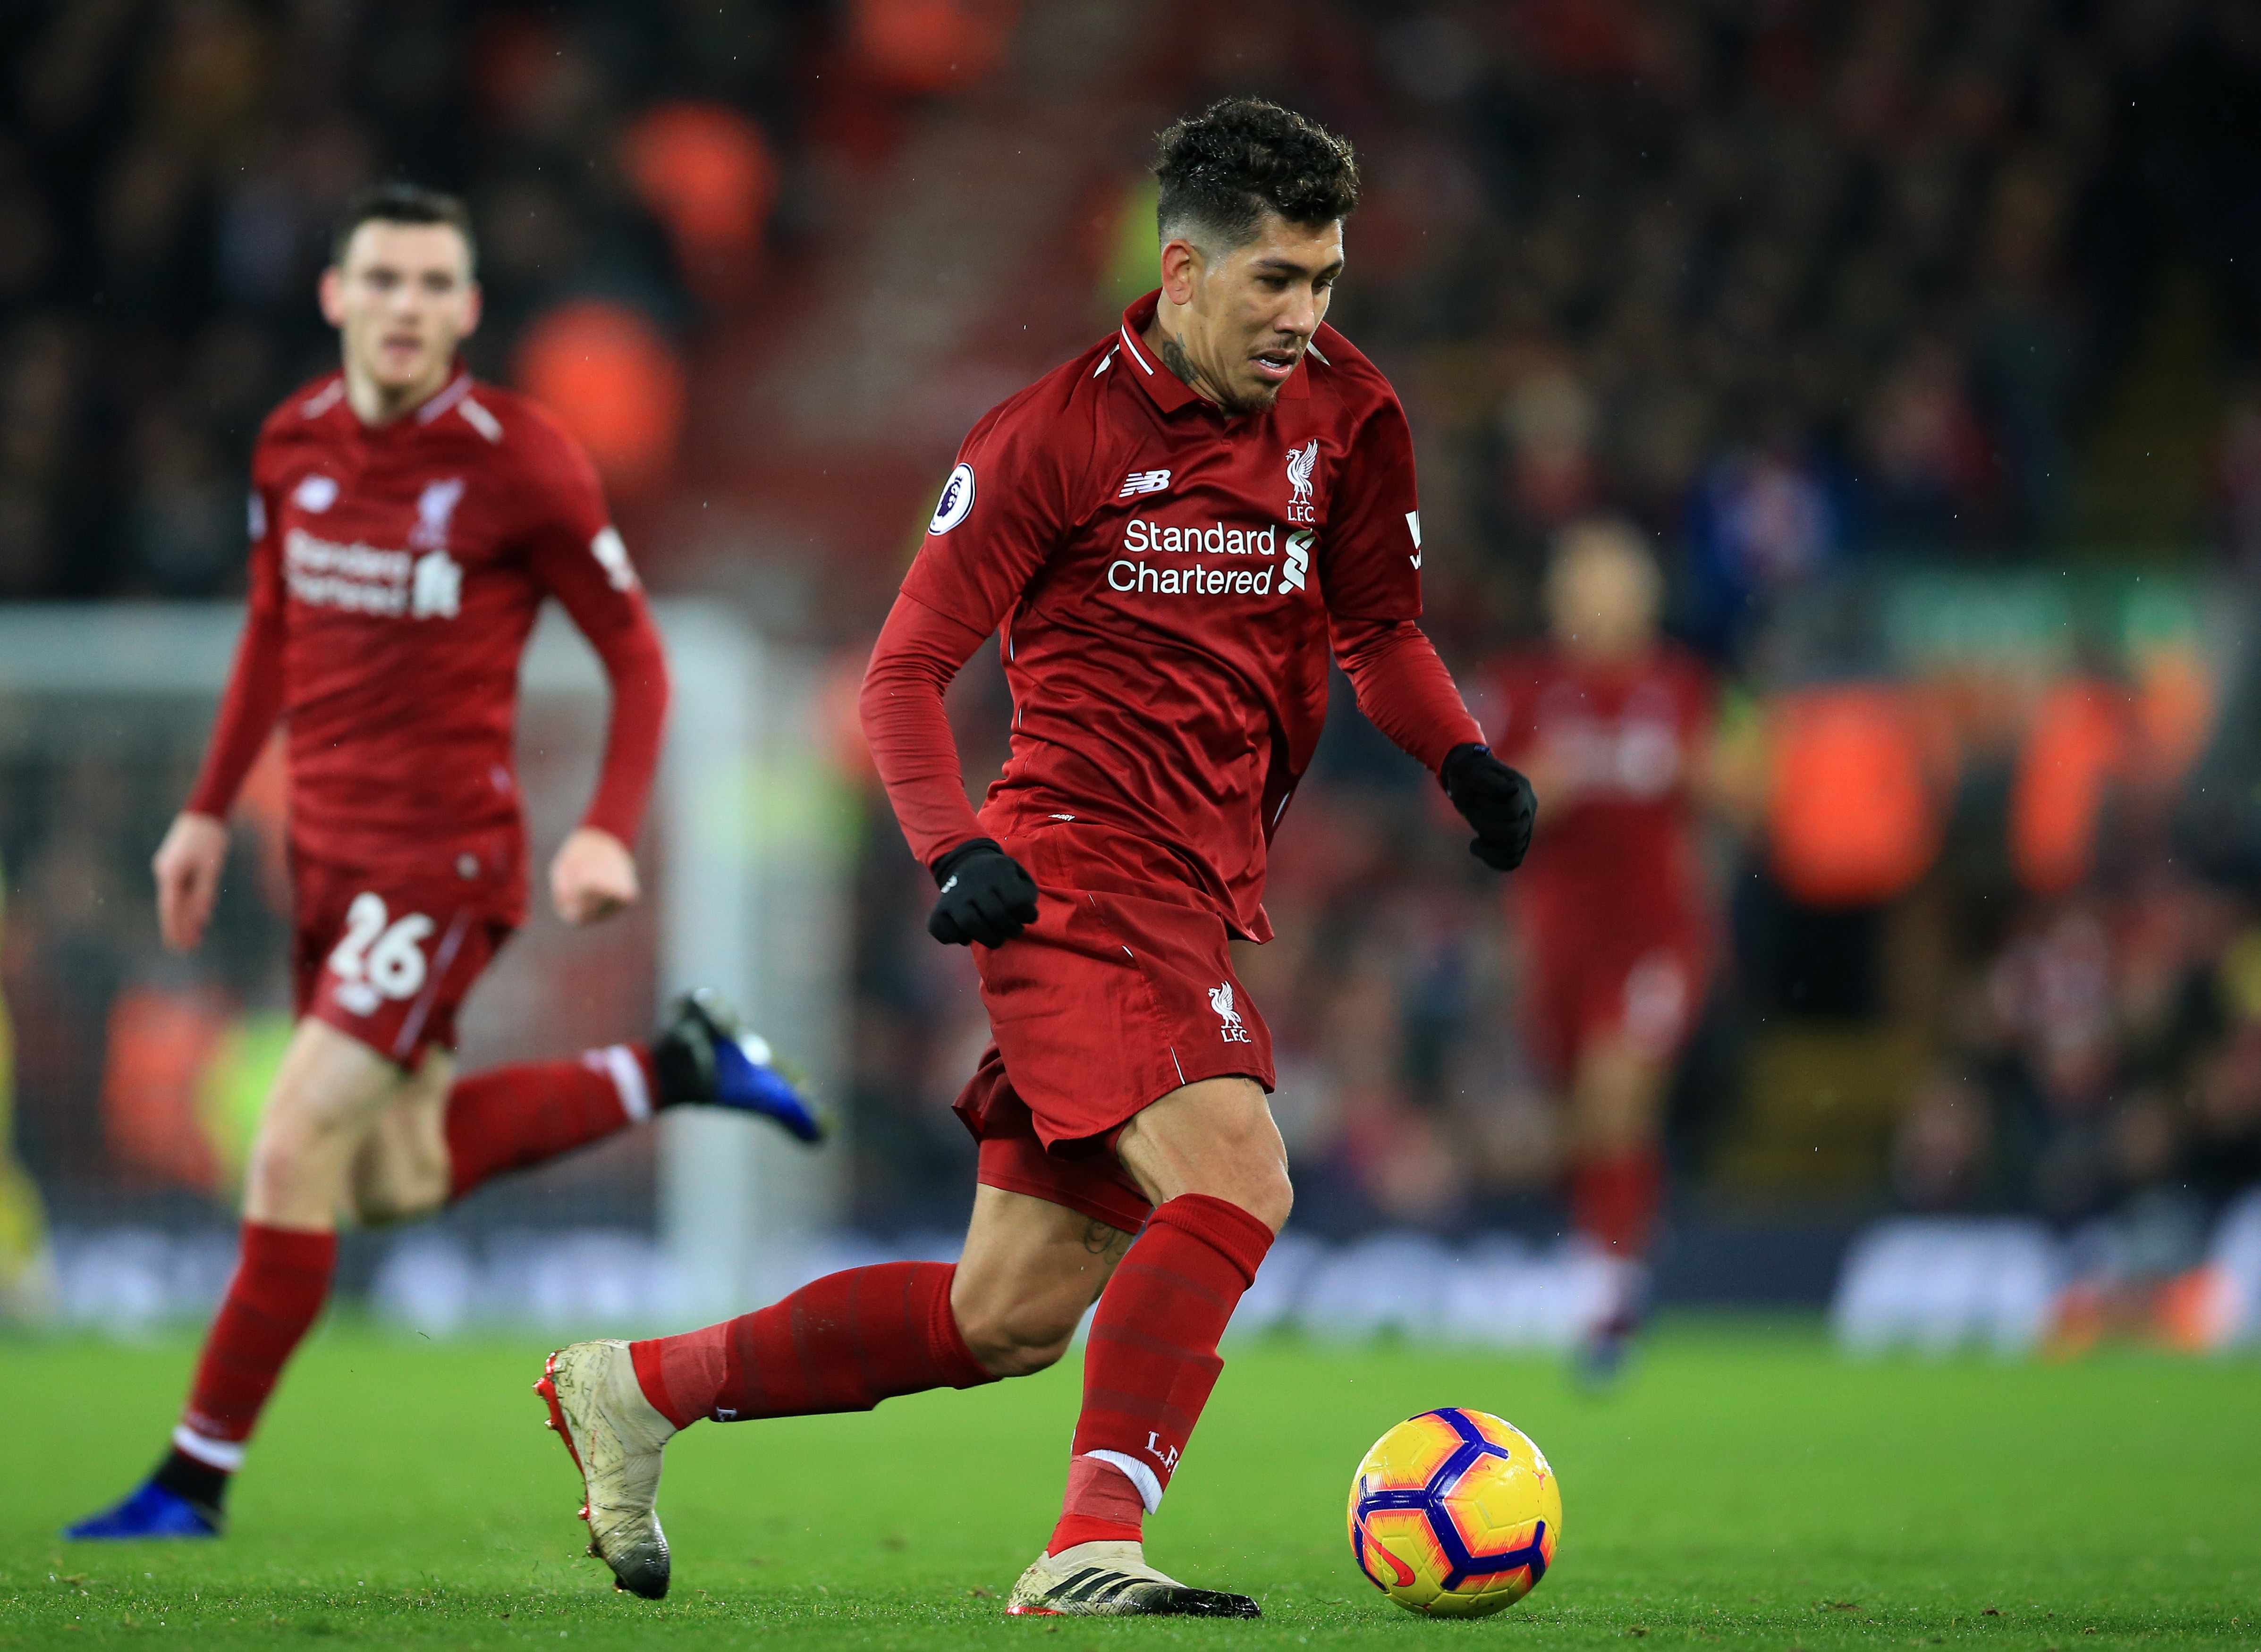 Roberto Firmino of Liverpool races forward on the ball (photo by David Blunsden/Action Plus via Getty Images)